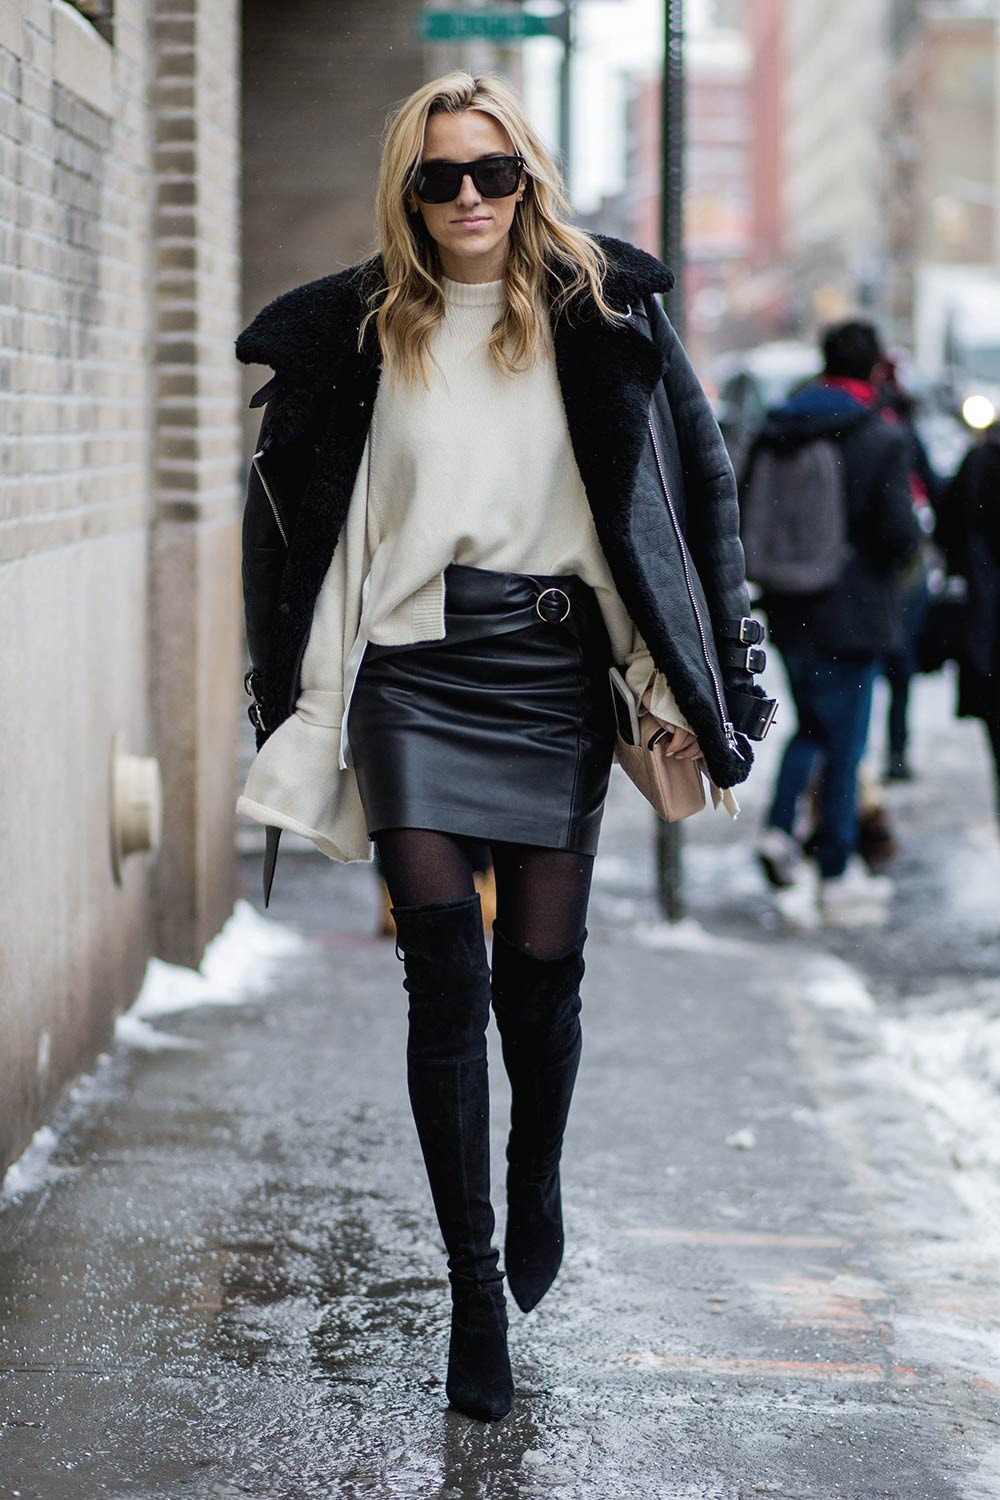 Street style at New York Fashion Week - Leather Celebrities